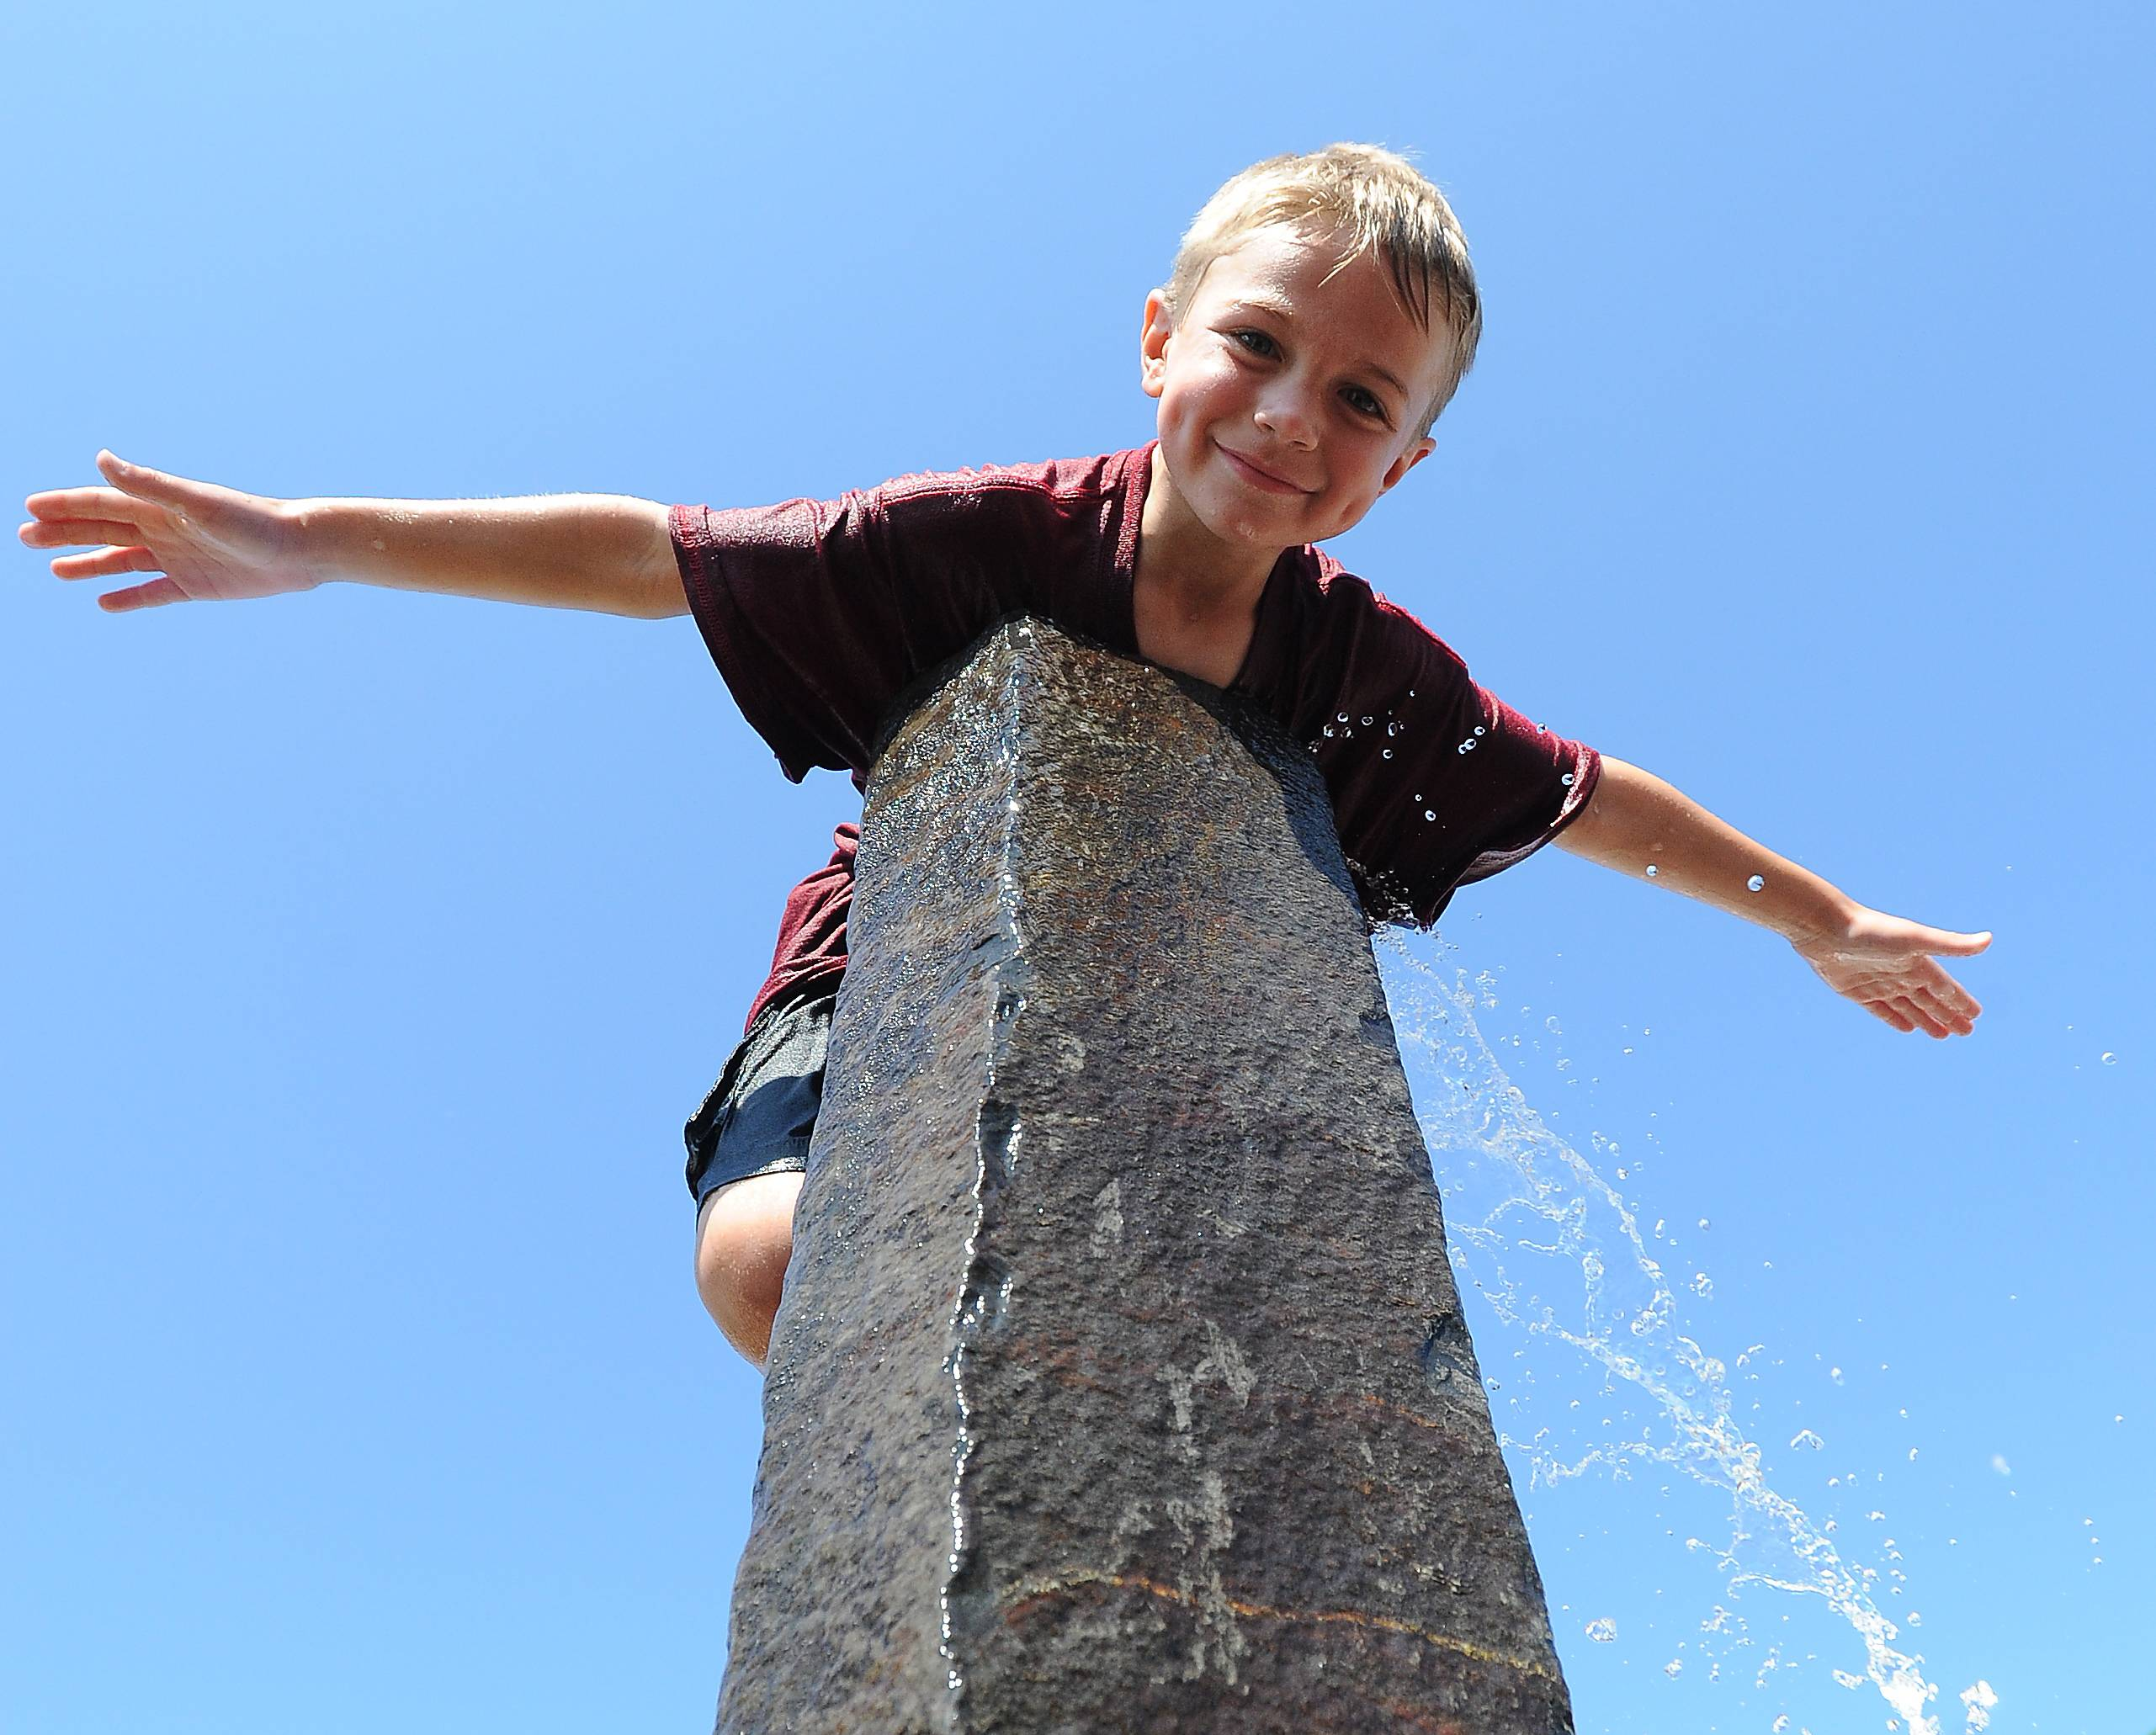 Shane McMillion, 6, of Trevor Wisconsin climbed on top of the water fountain to keep cool as his mom sold goods at the Farm Heritage and Harvest Festival at the Lake County Fairgrounds on Sunday.